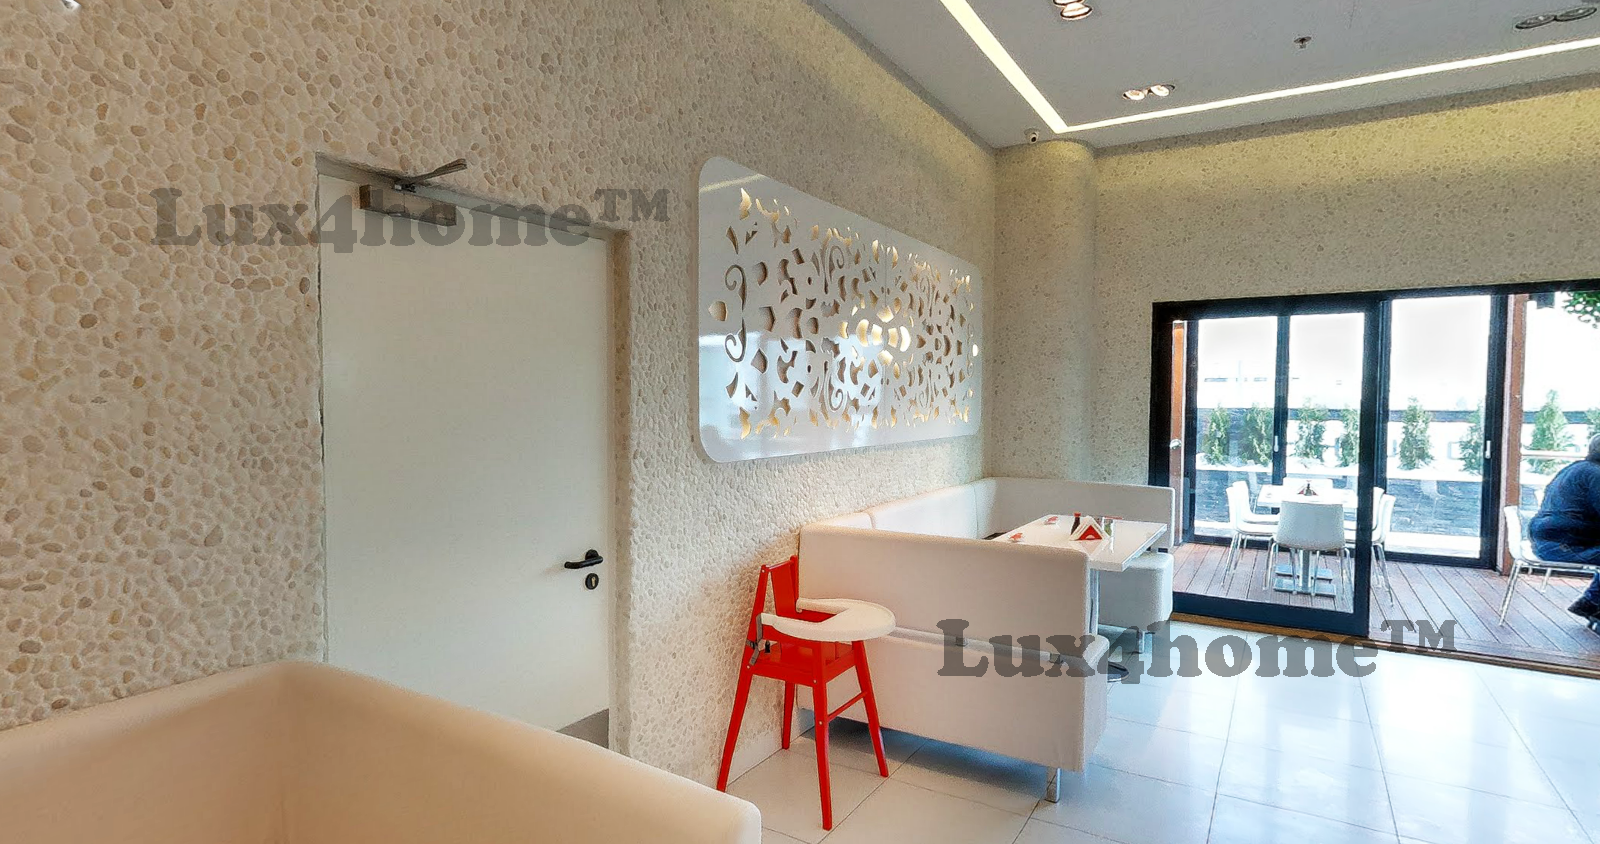 pebble-walls-Lux4home (3)